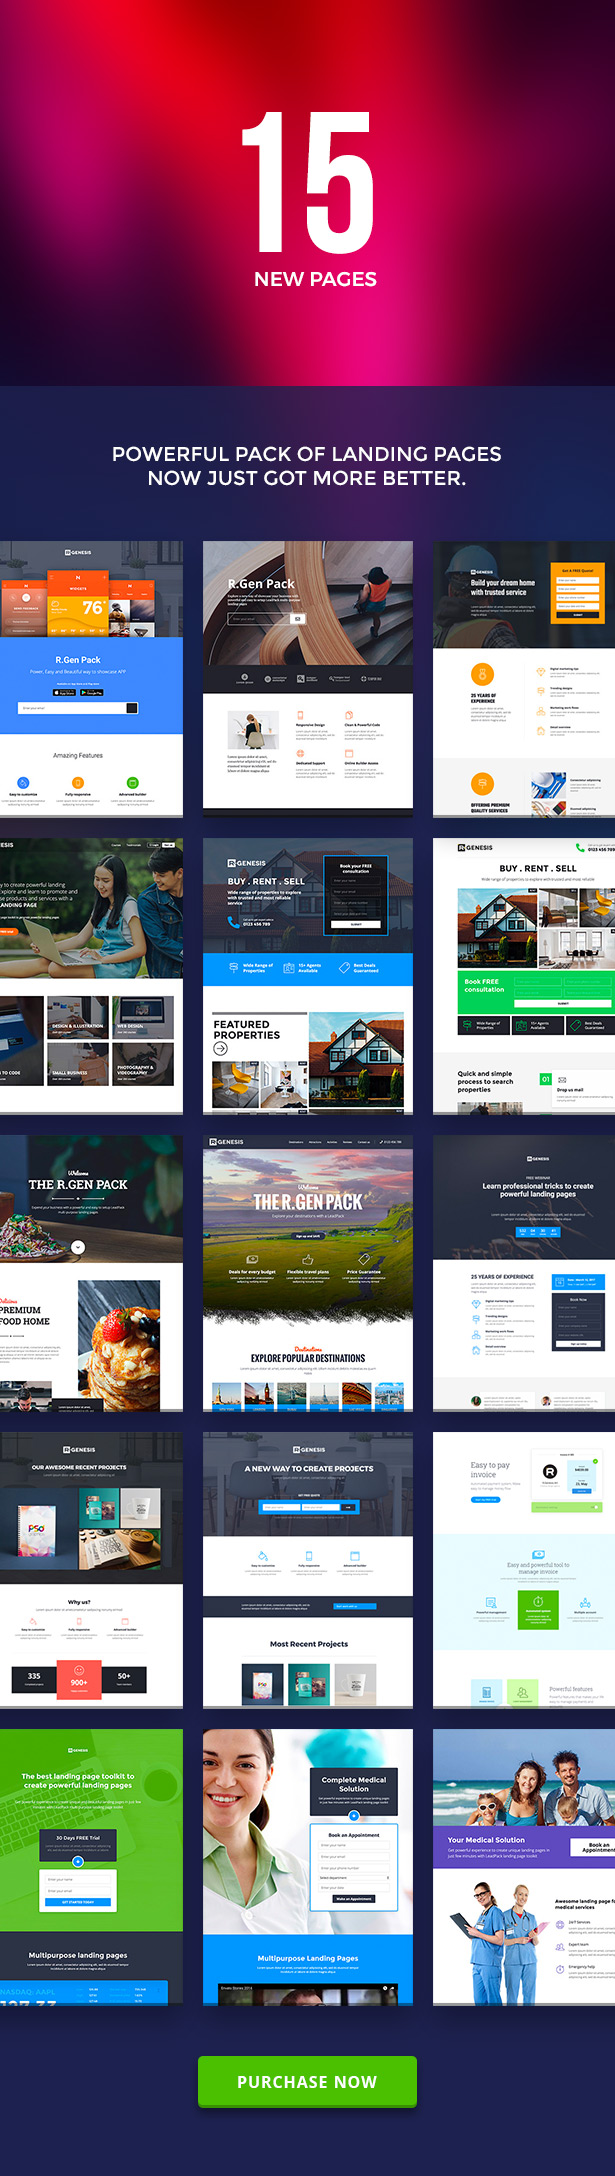 RGen | HTML Landing Pages with Builder - 3